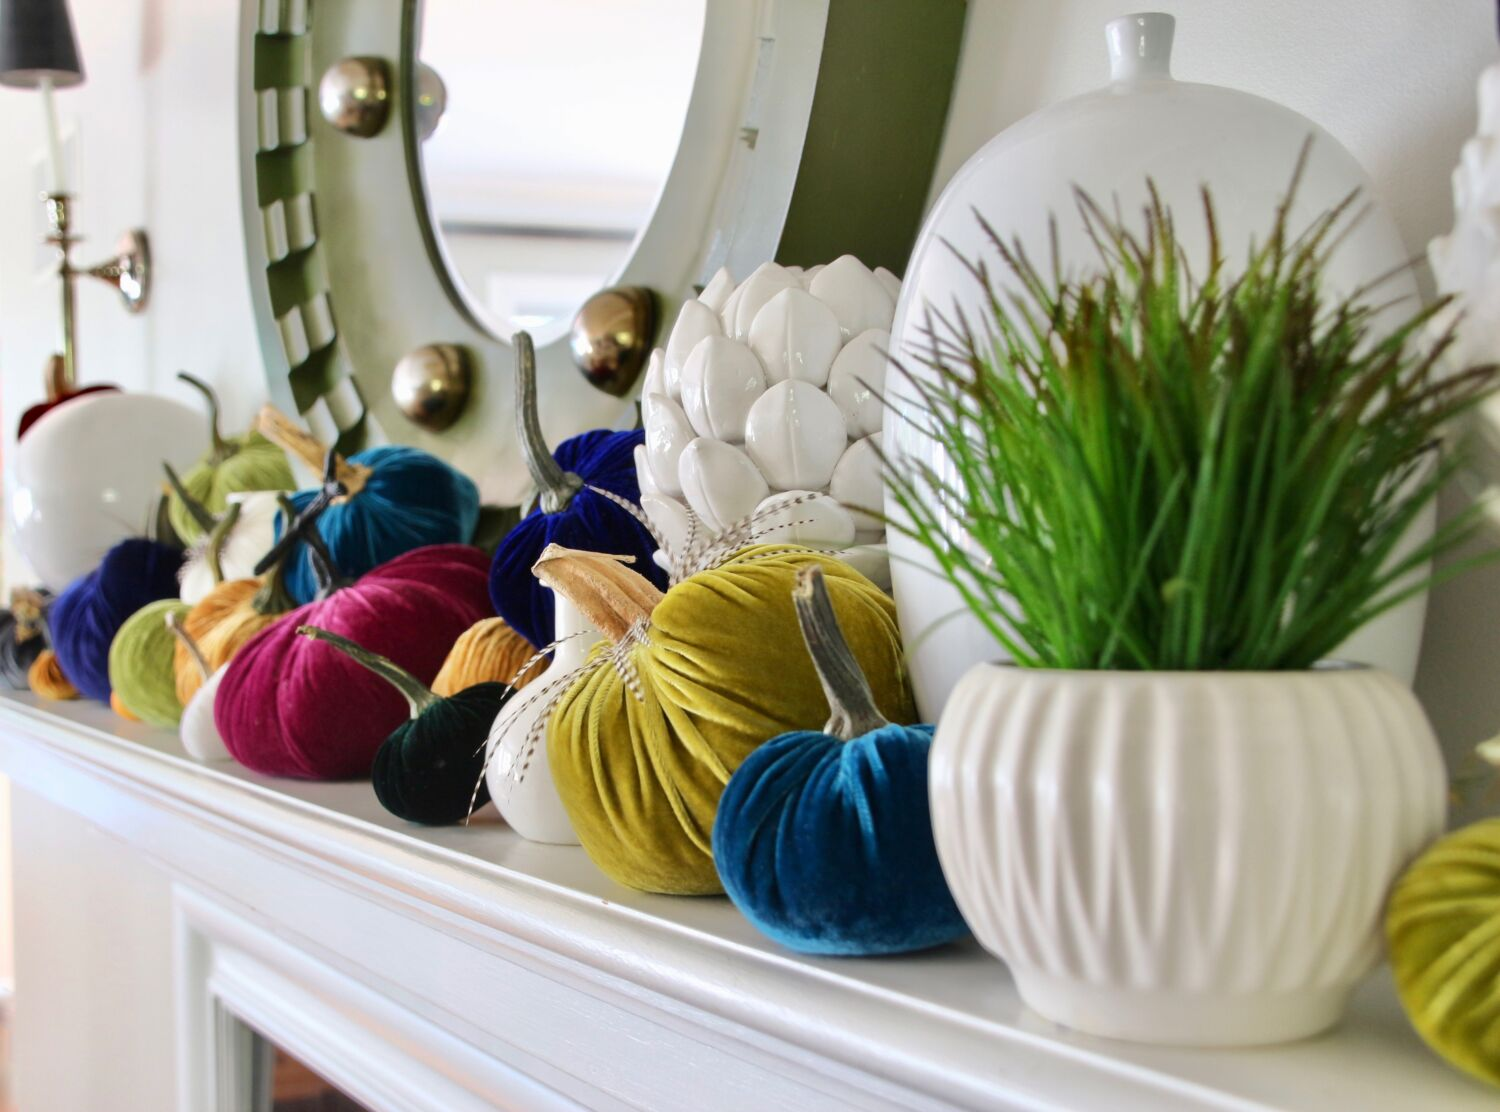 velvet_Pumpkins_meme_hill_mantel_decorating_fall_decorating_lizzandpip_feathers_colorful_handmade_turquoise_teal